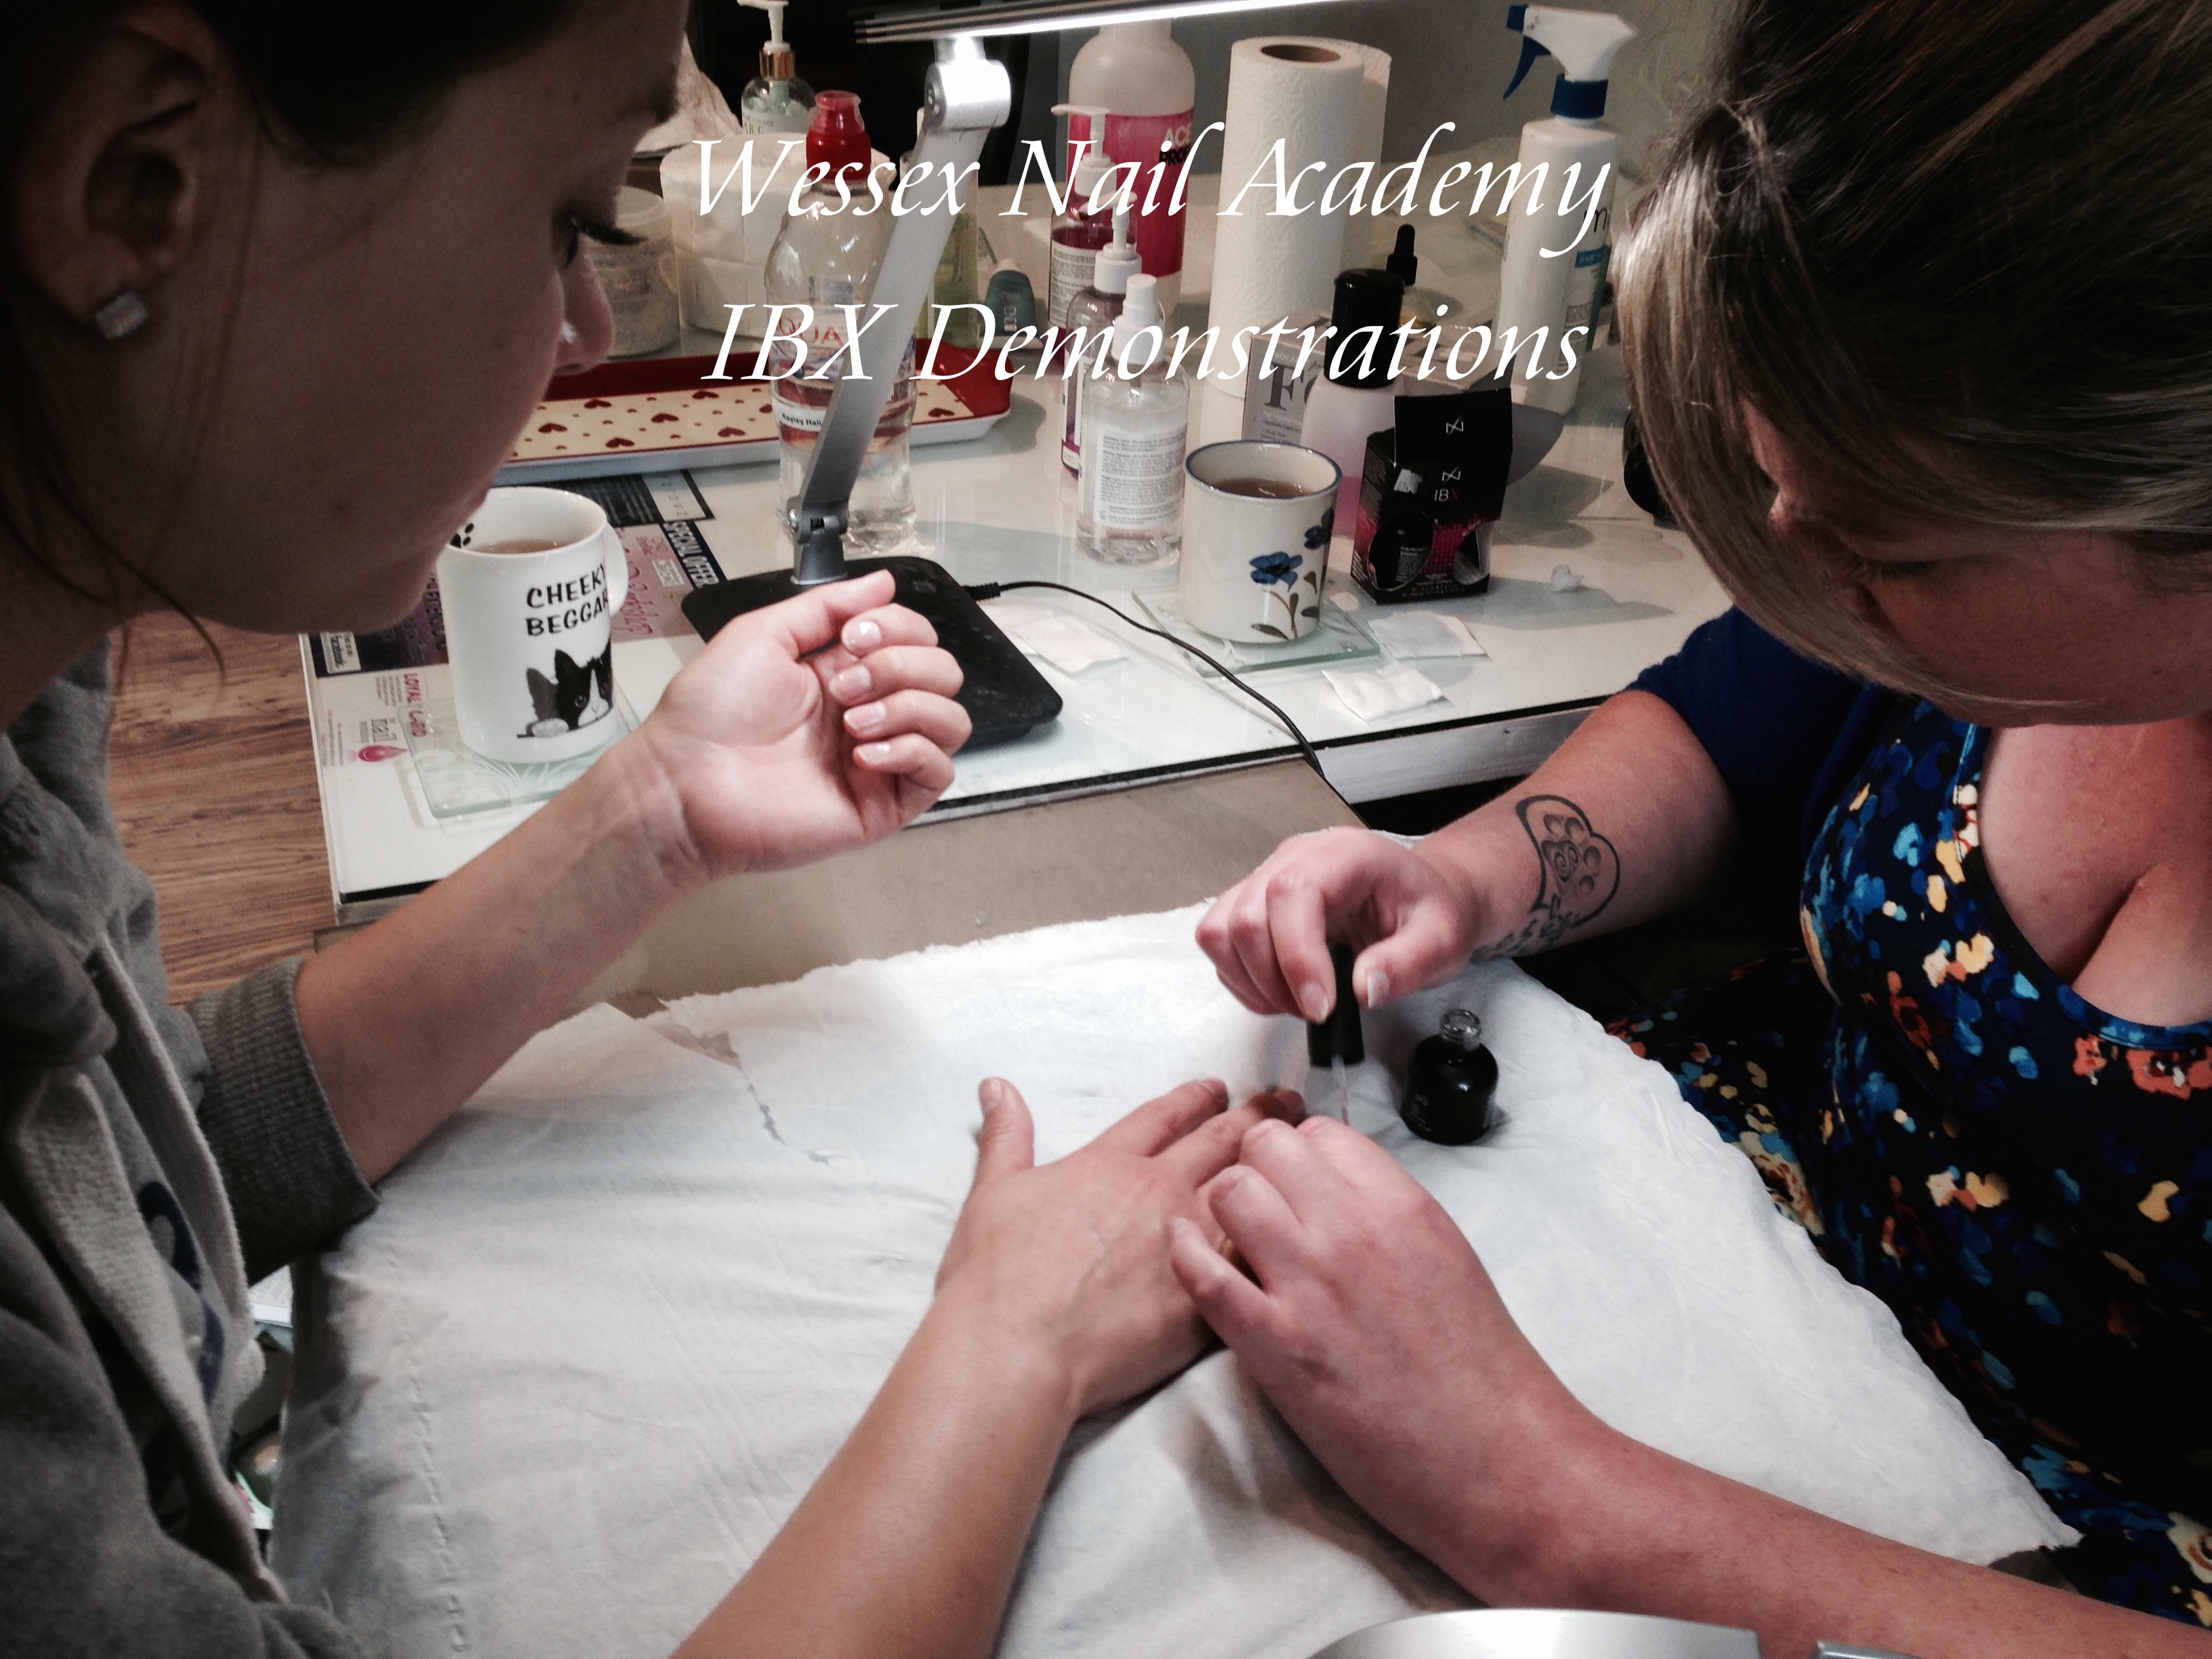 Beginners IBX Demonstrations, Nail extension training , nail training course, Wessex Nail Academy Okeford Fitzpaine, Dorset